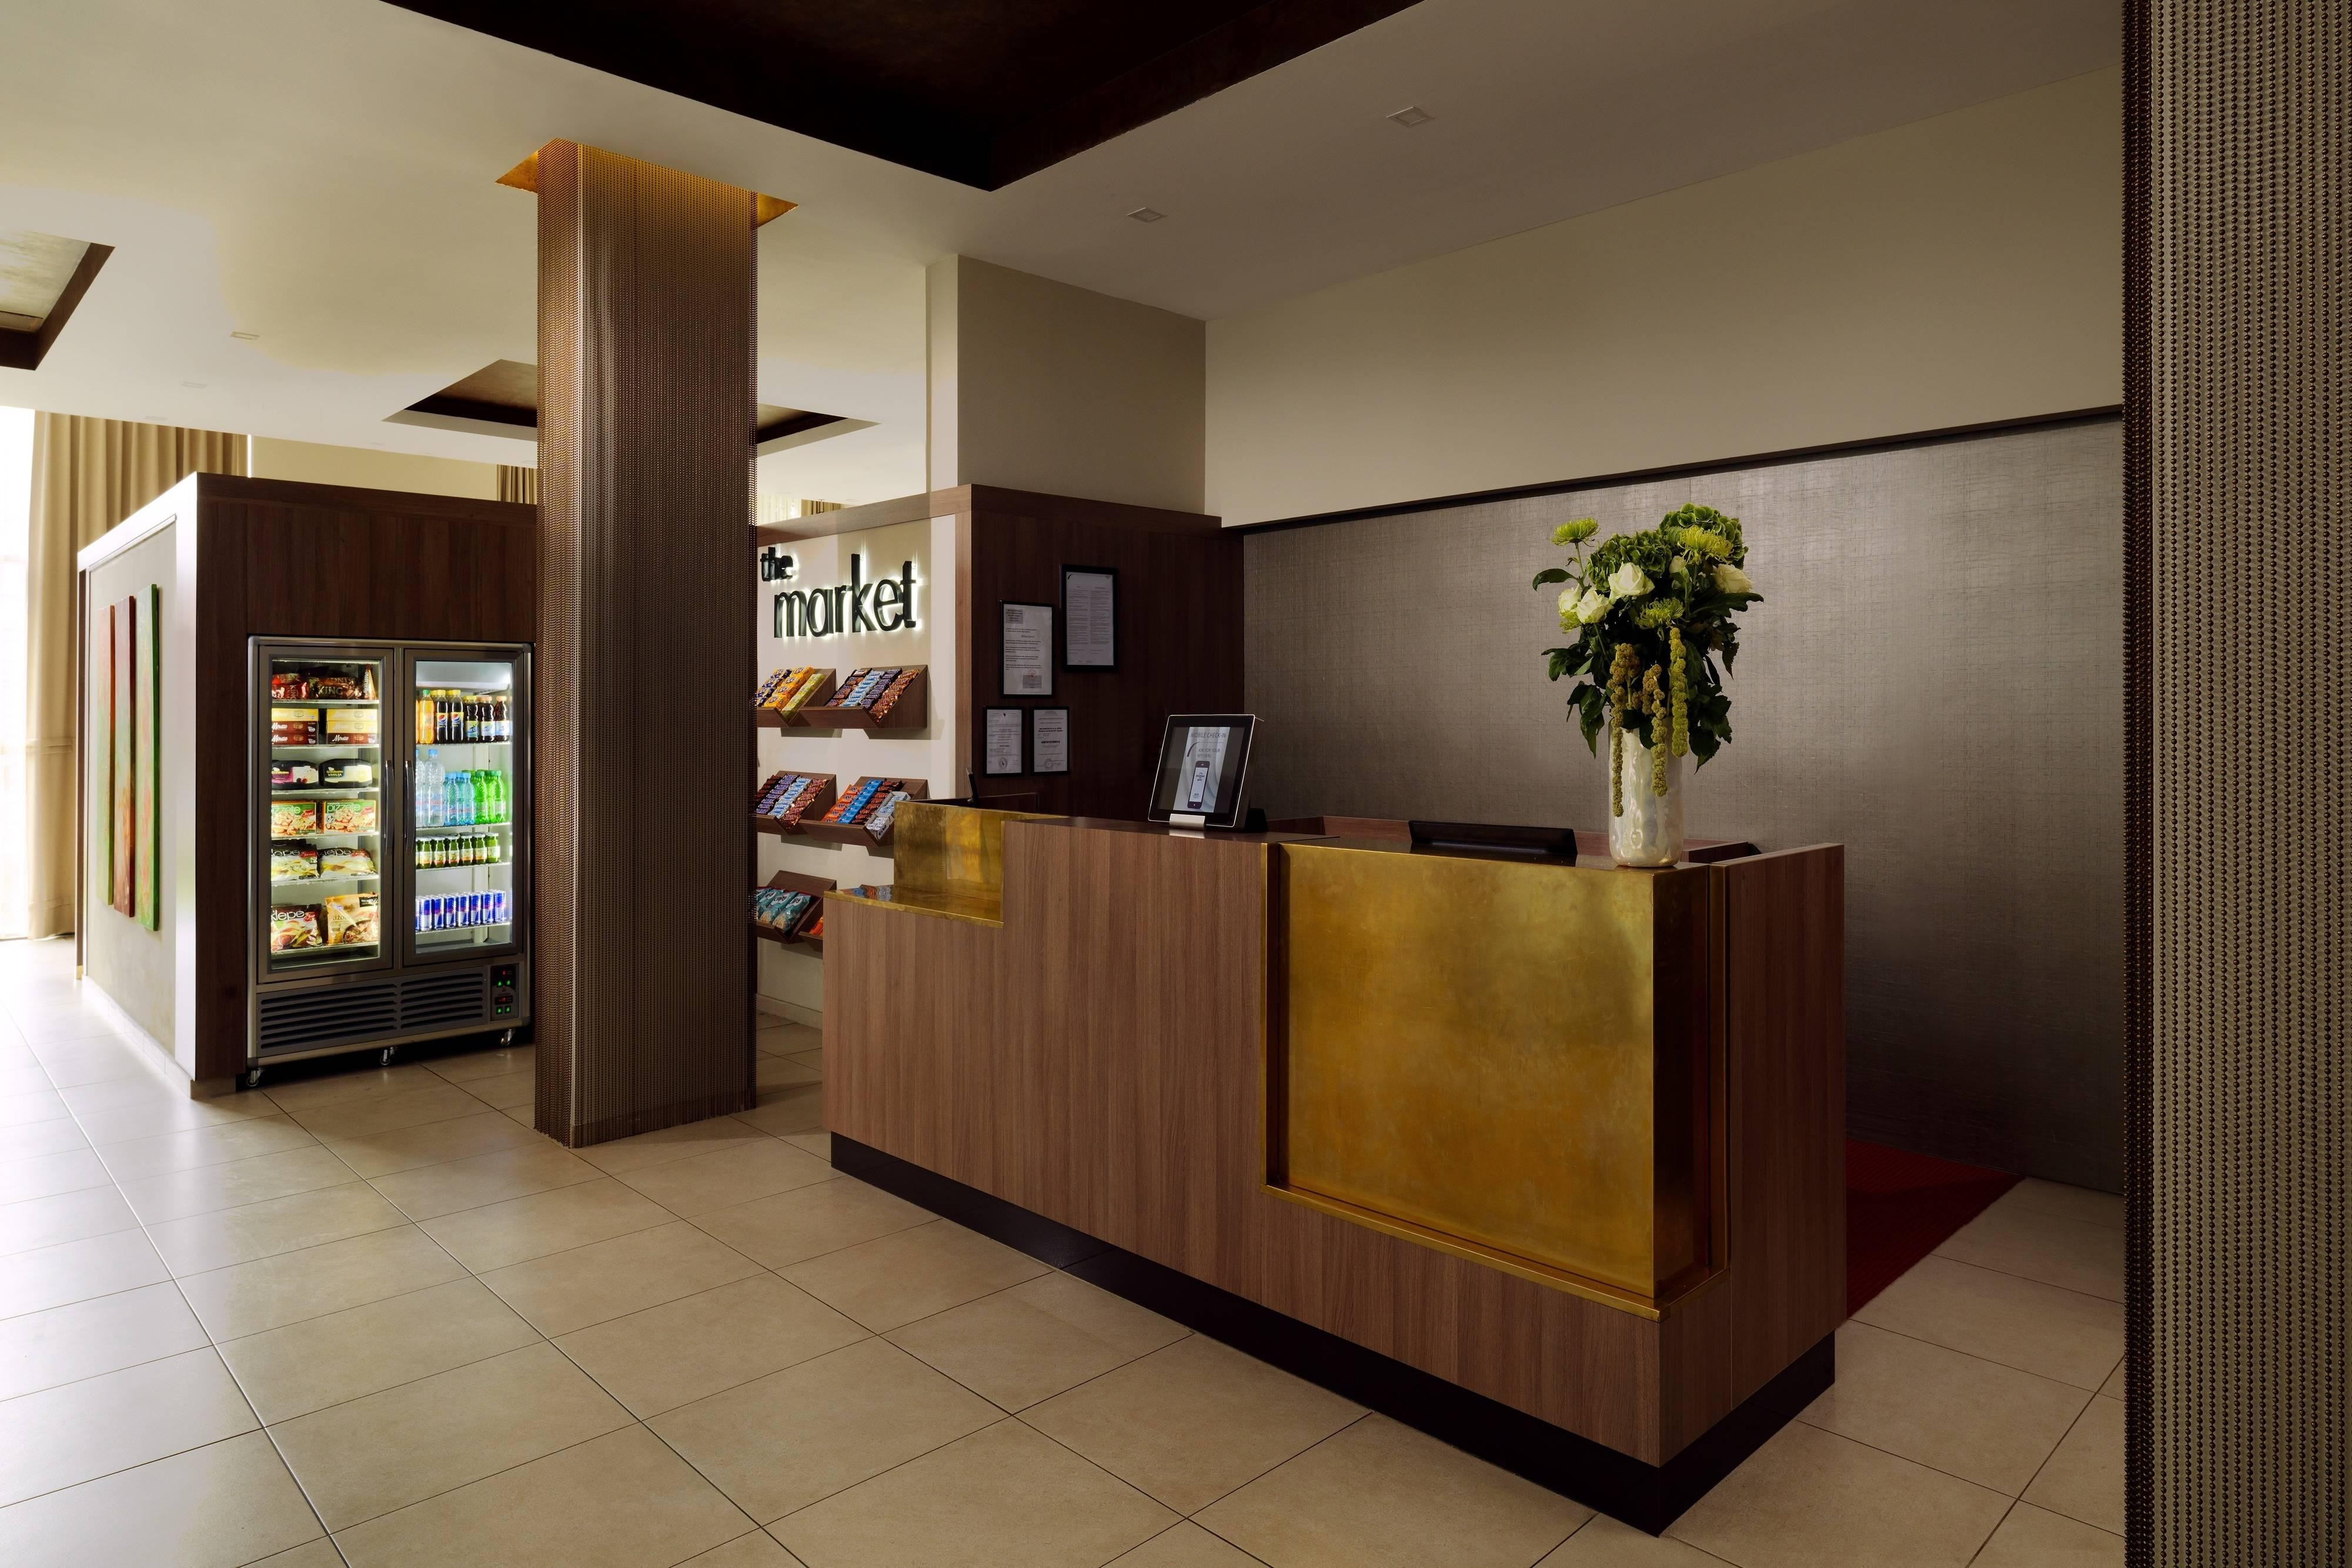 Front Desk and The Market